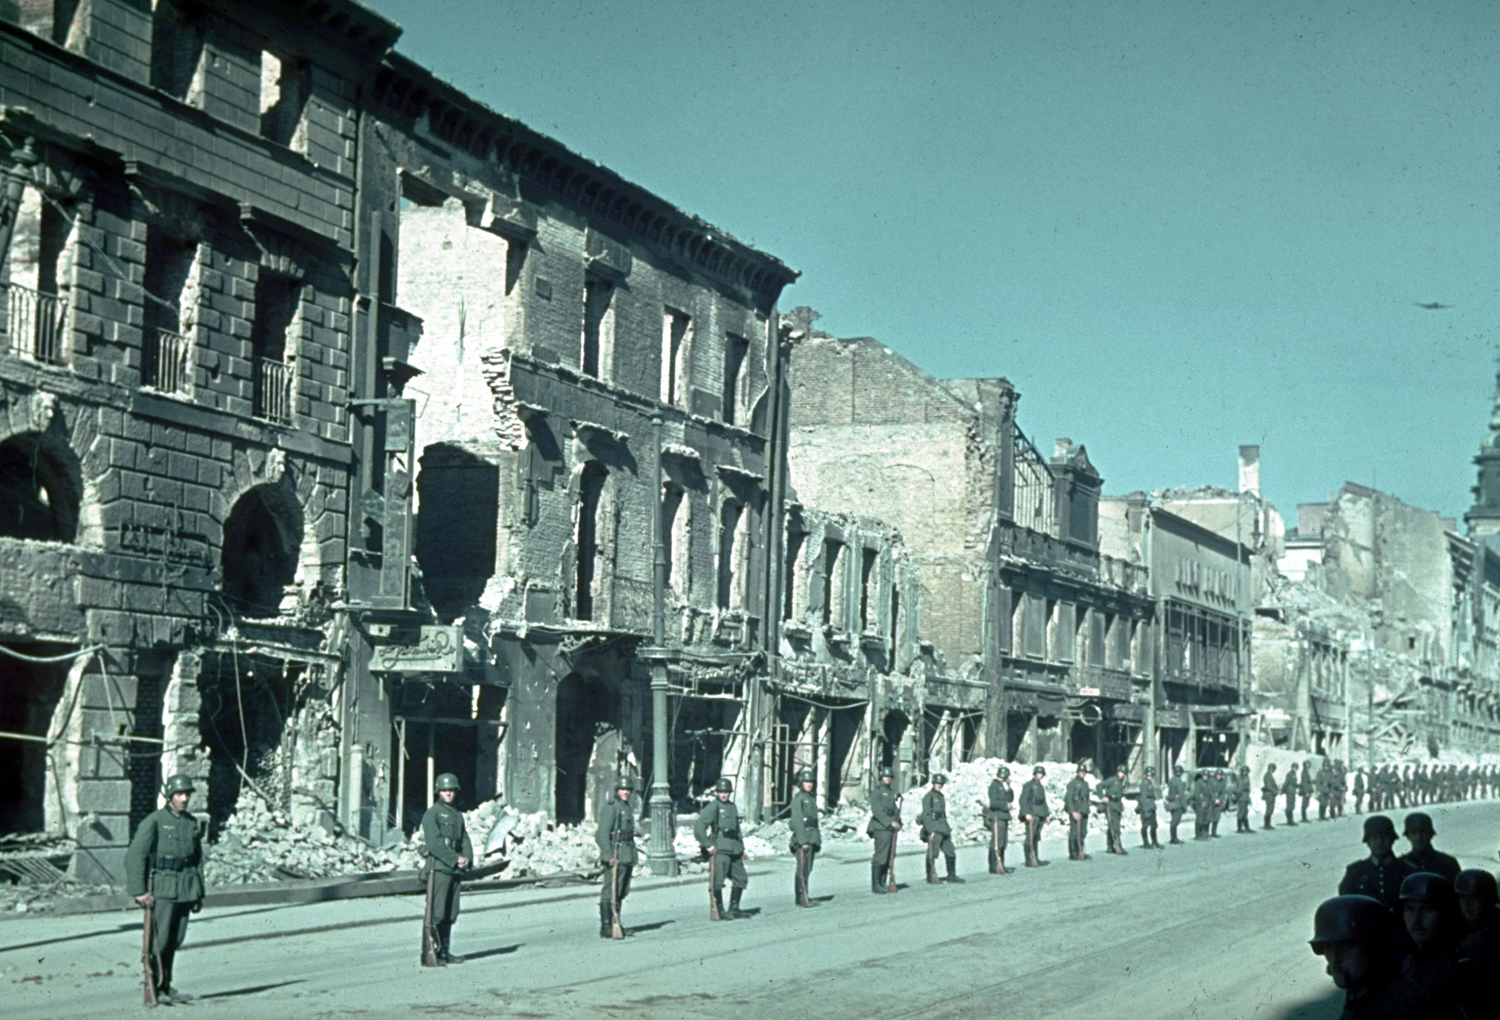 German troops prepare for victory parade after the invasion of Poland, 1939.